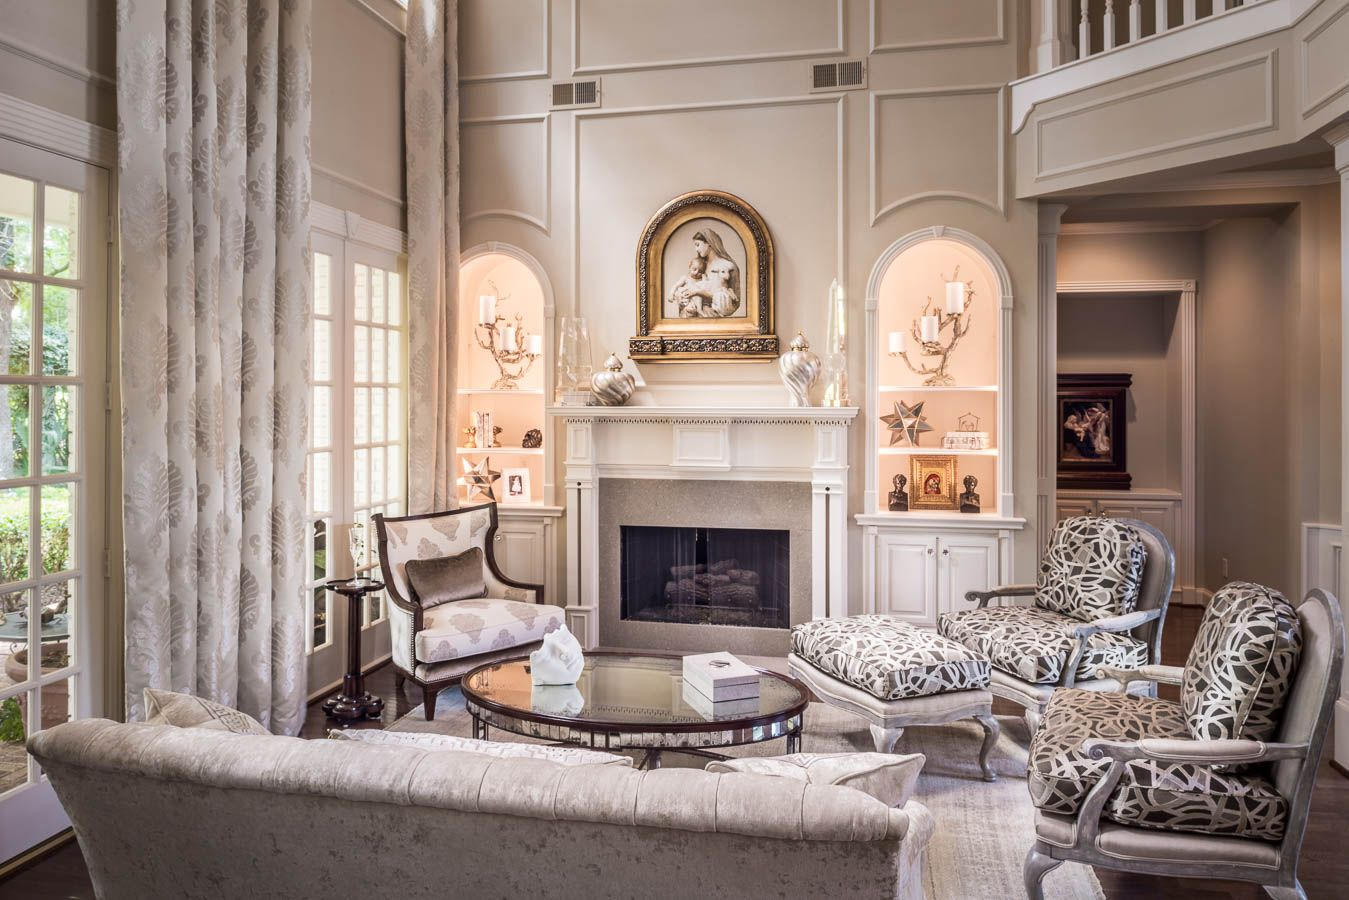 transitional style living room furniture. 30 Marvelous Transitional Living Design Ideas Style Room Furniture